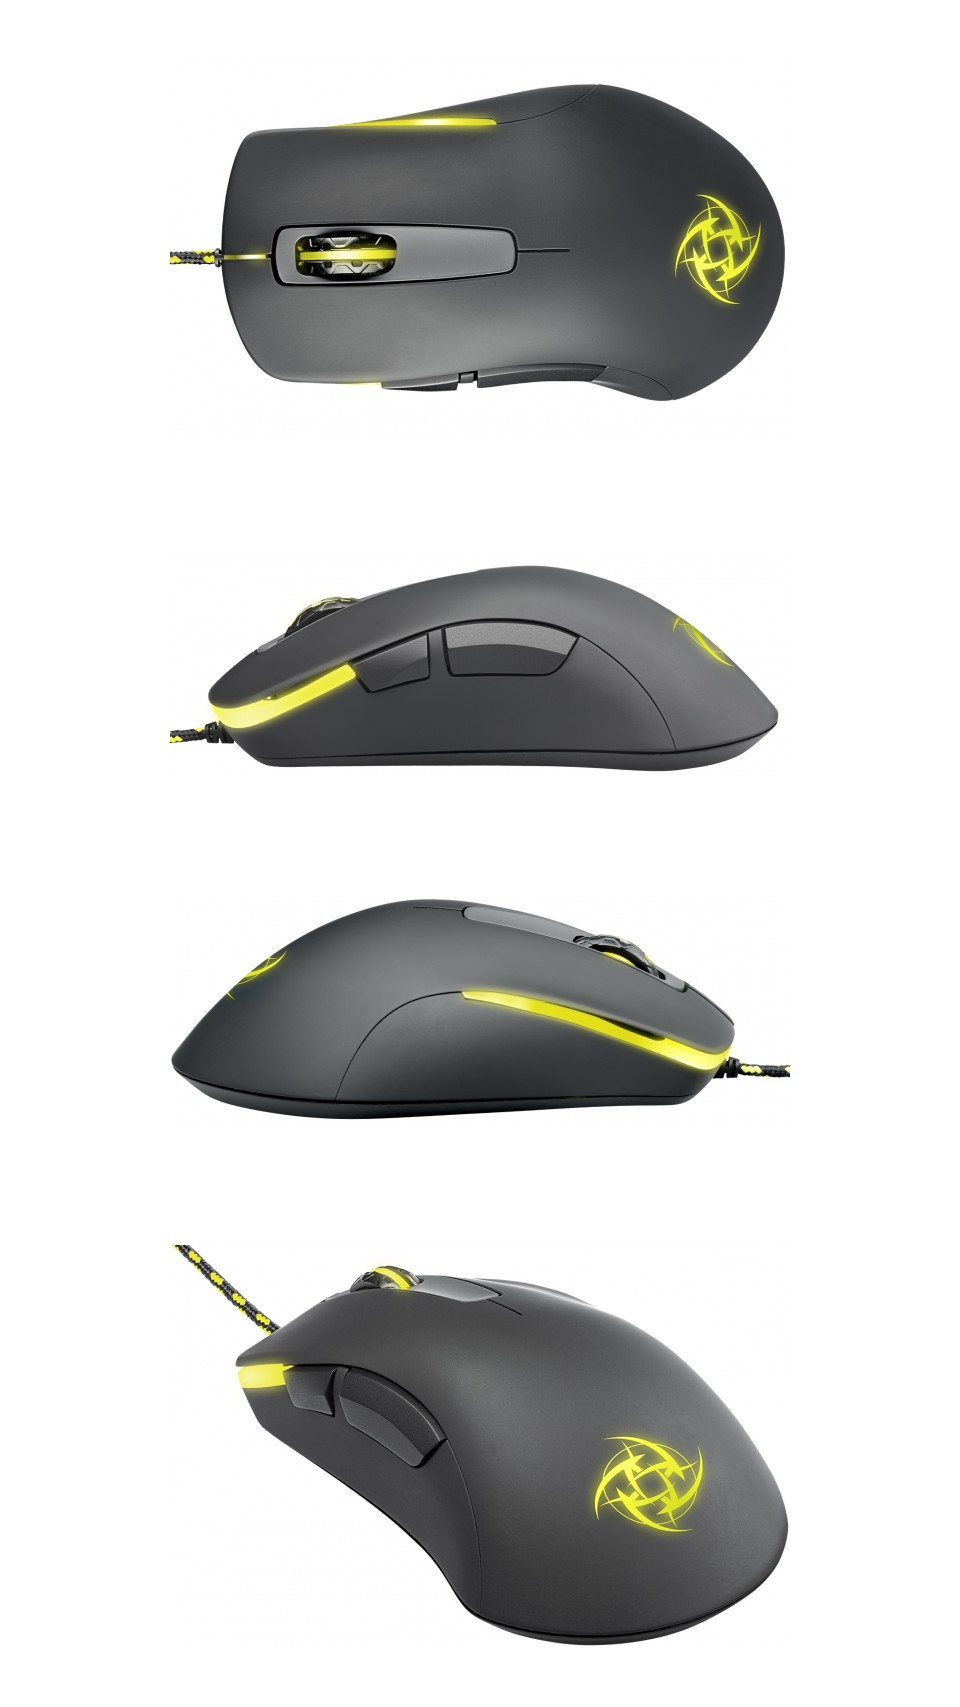 Xtrfy M1 Optical Gaming Mouse NiP Edition product